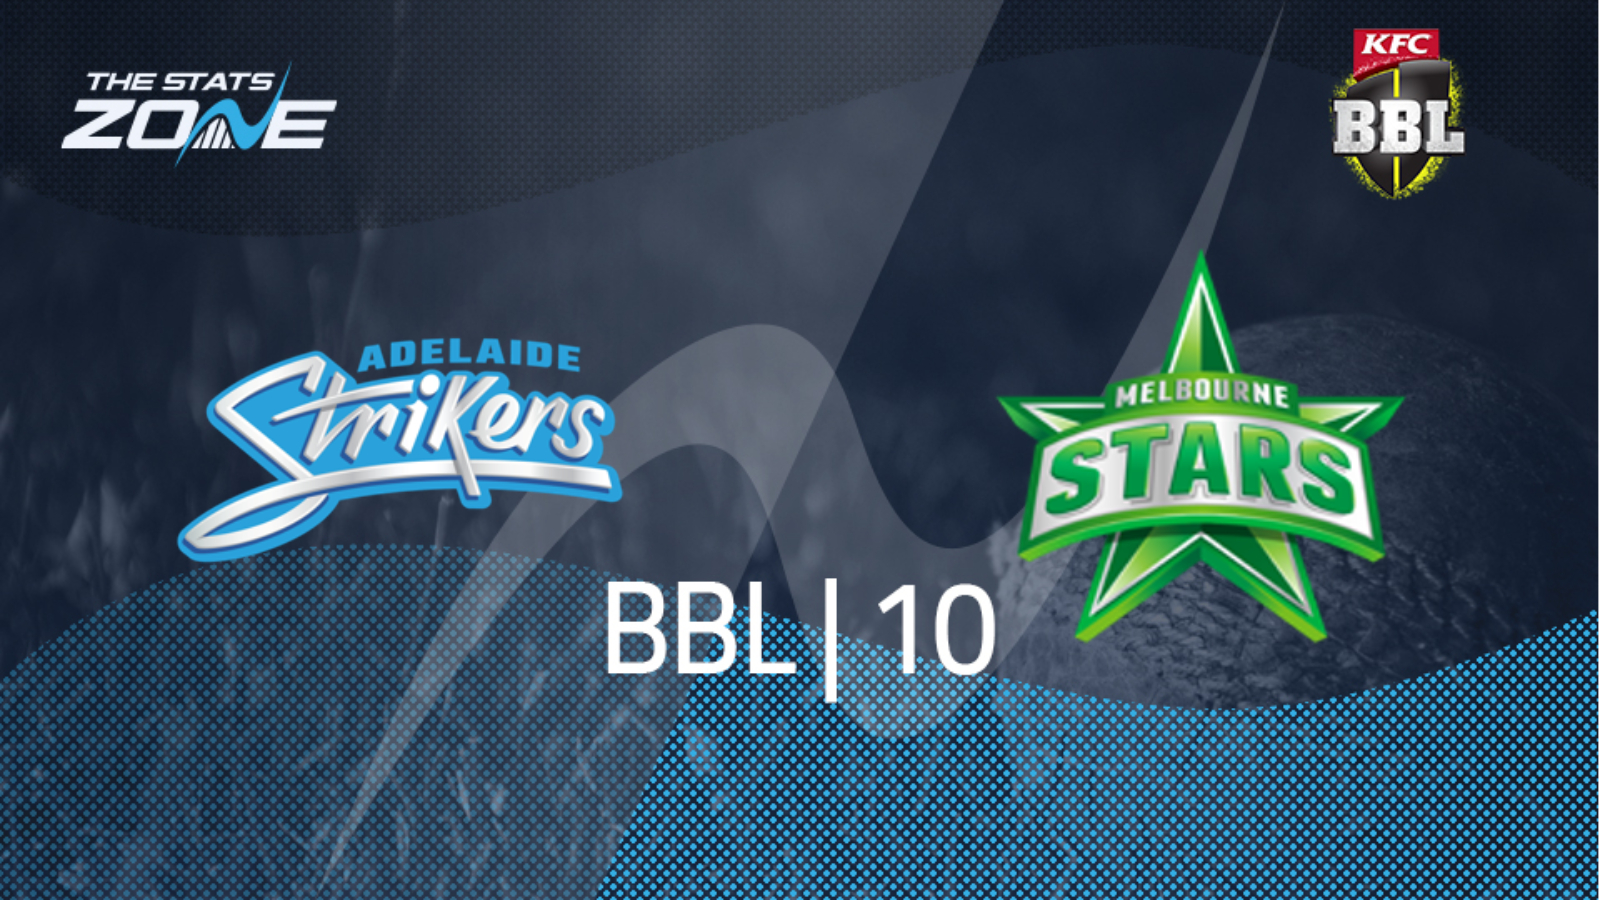 melbourne stars vs adelaide strikers betting preview